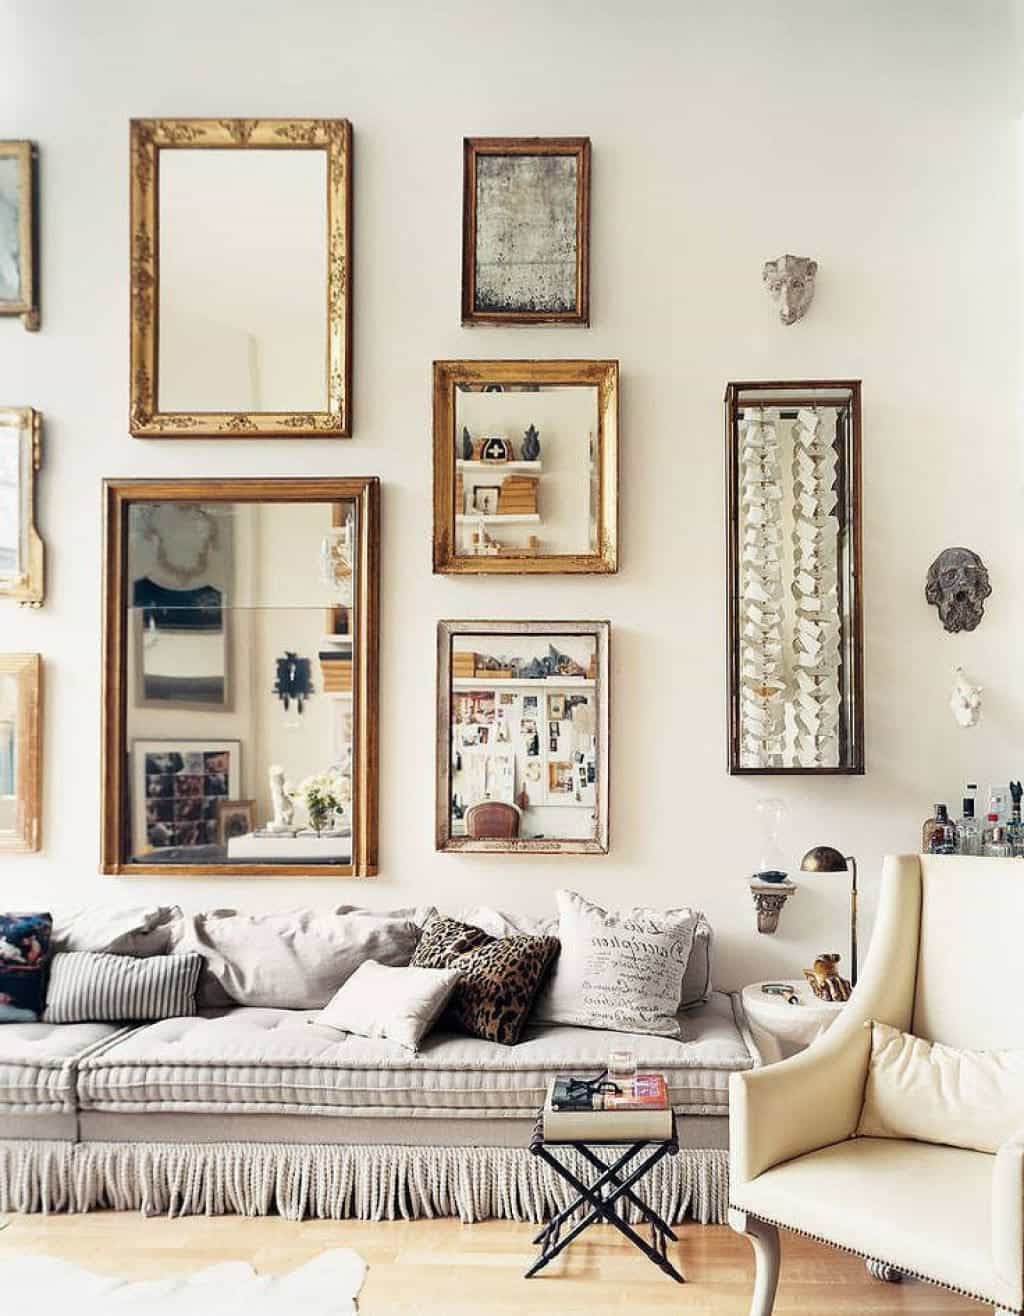 Grey Sofa With Ruffles Against Wall Mirrors And Decor In The Living Intended For Popular Decorative Living Room Wall Mirrors (Gallery 18 of 20)